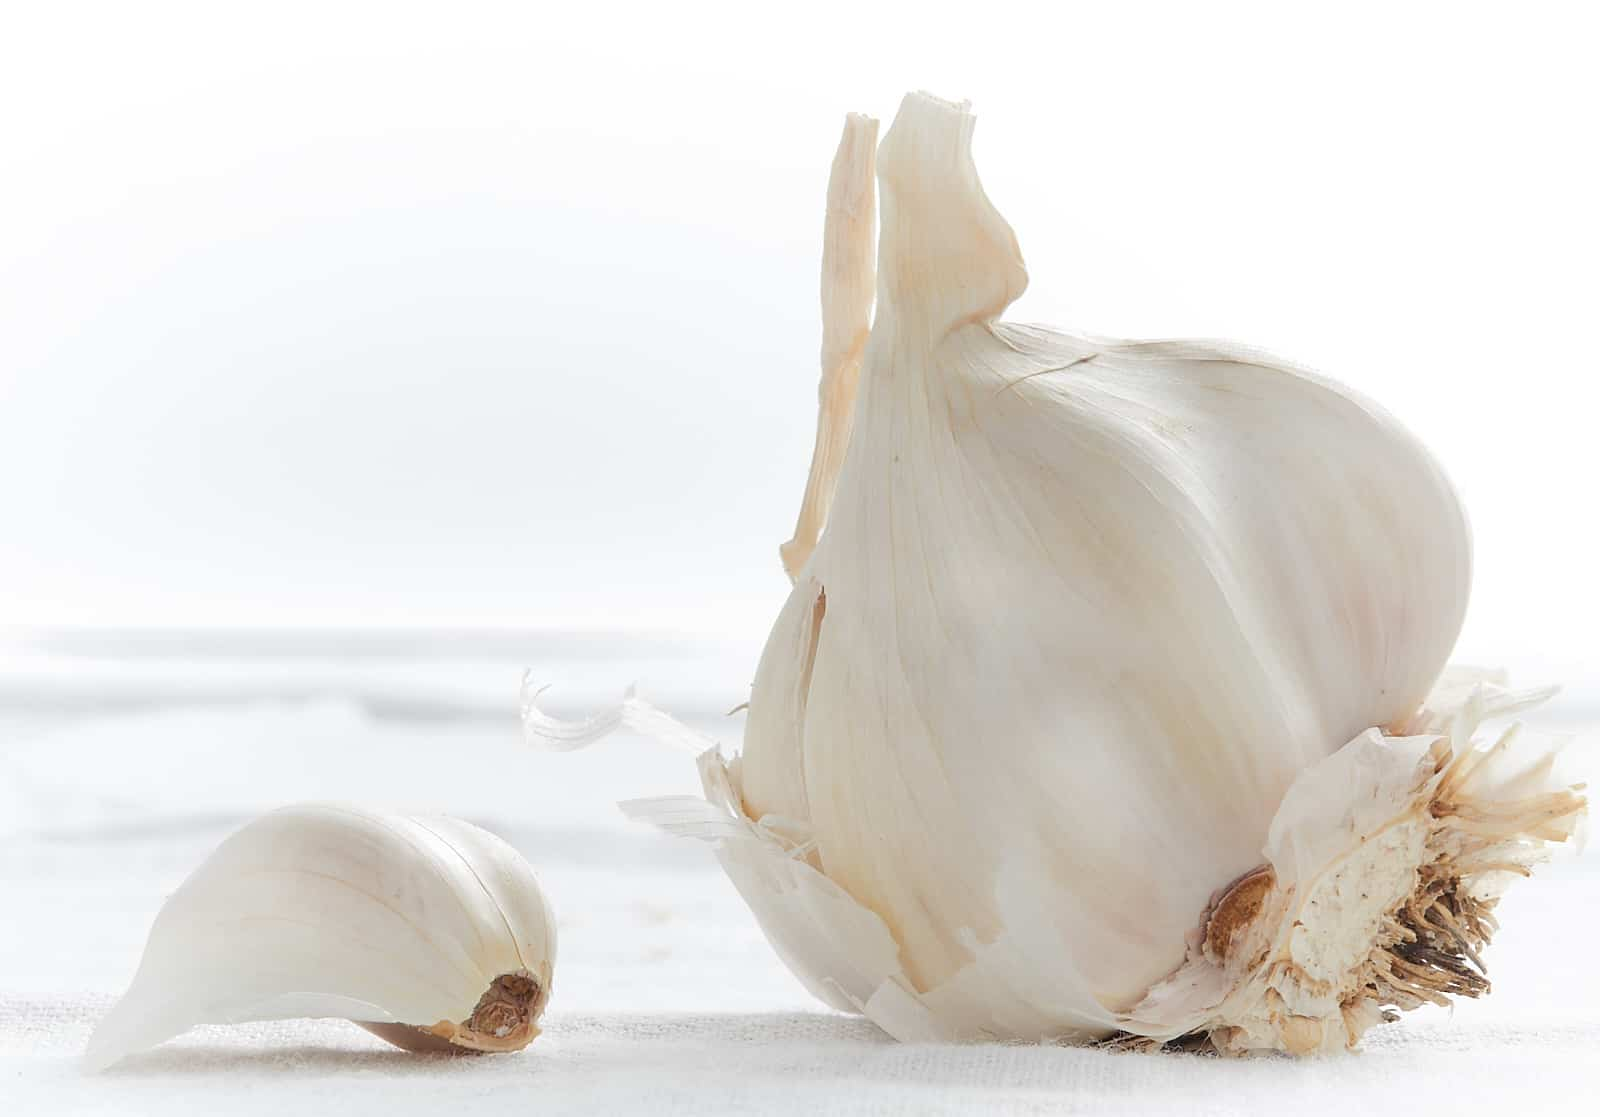 Garlic bulb and clove on white background.